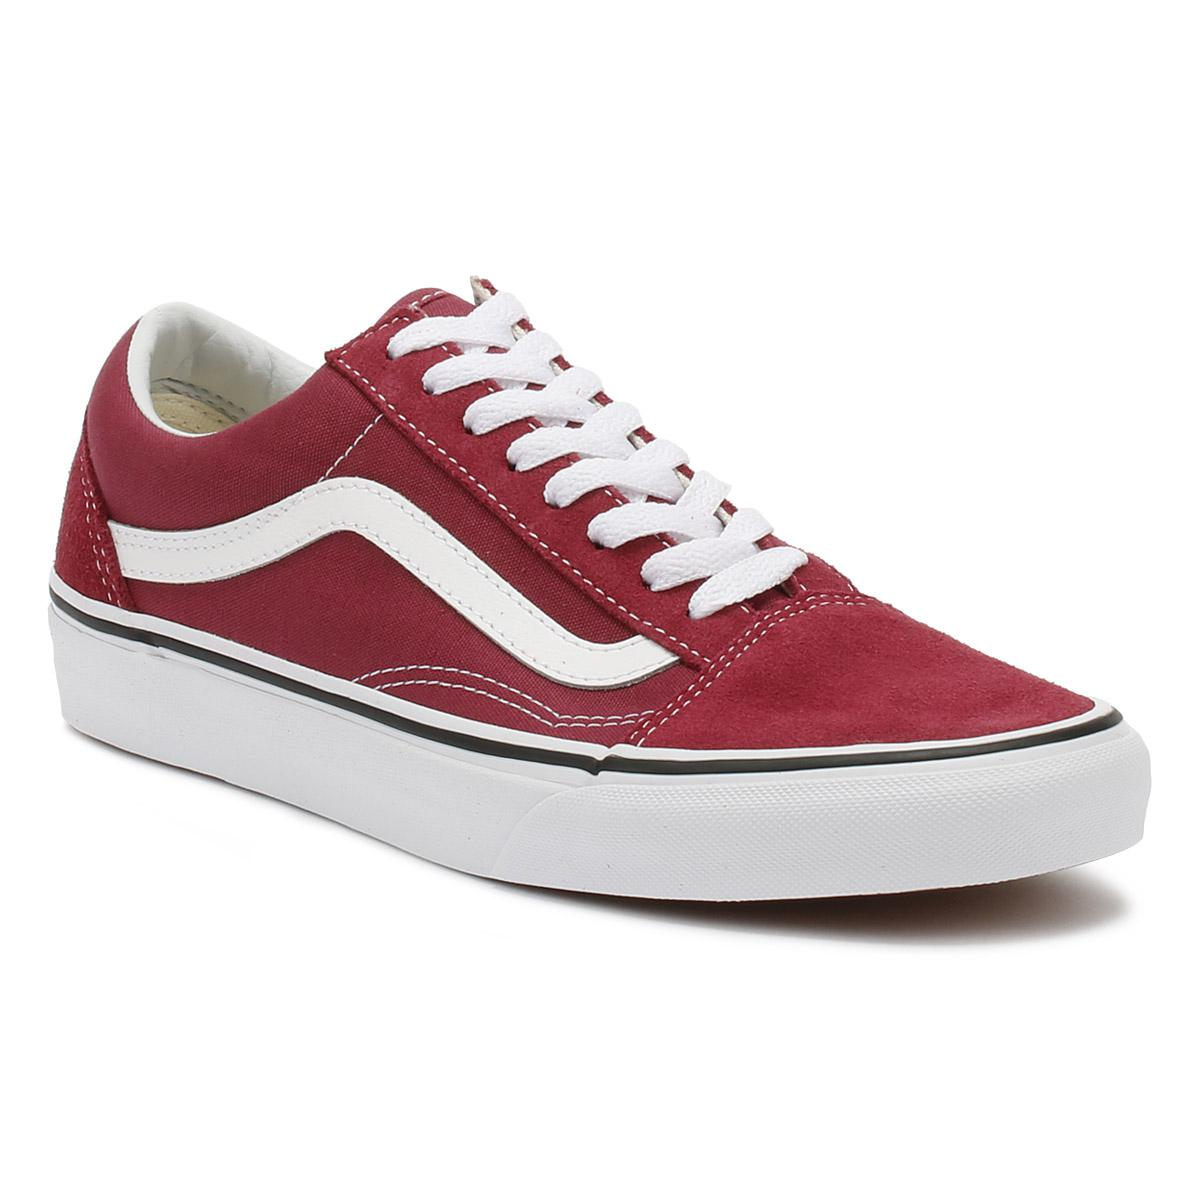 Lyst - Vans Dry Rose Red   True White Old Skool Trainers in Red 16d76d98c